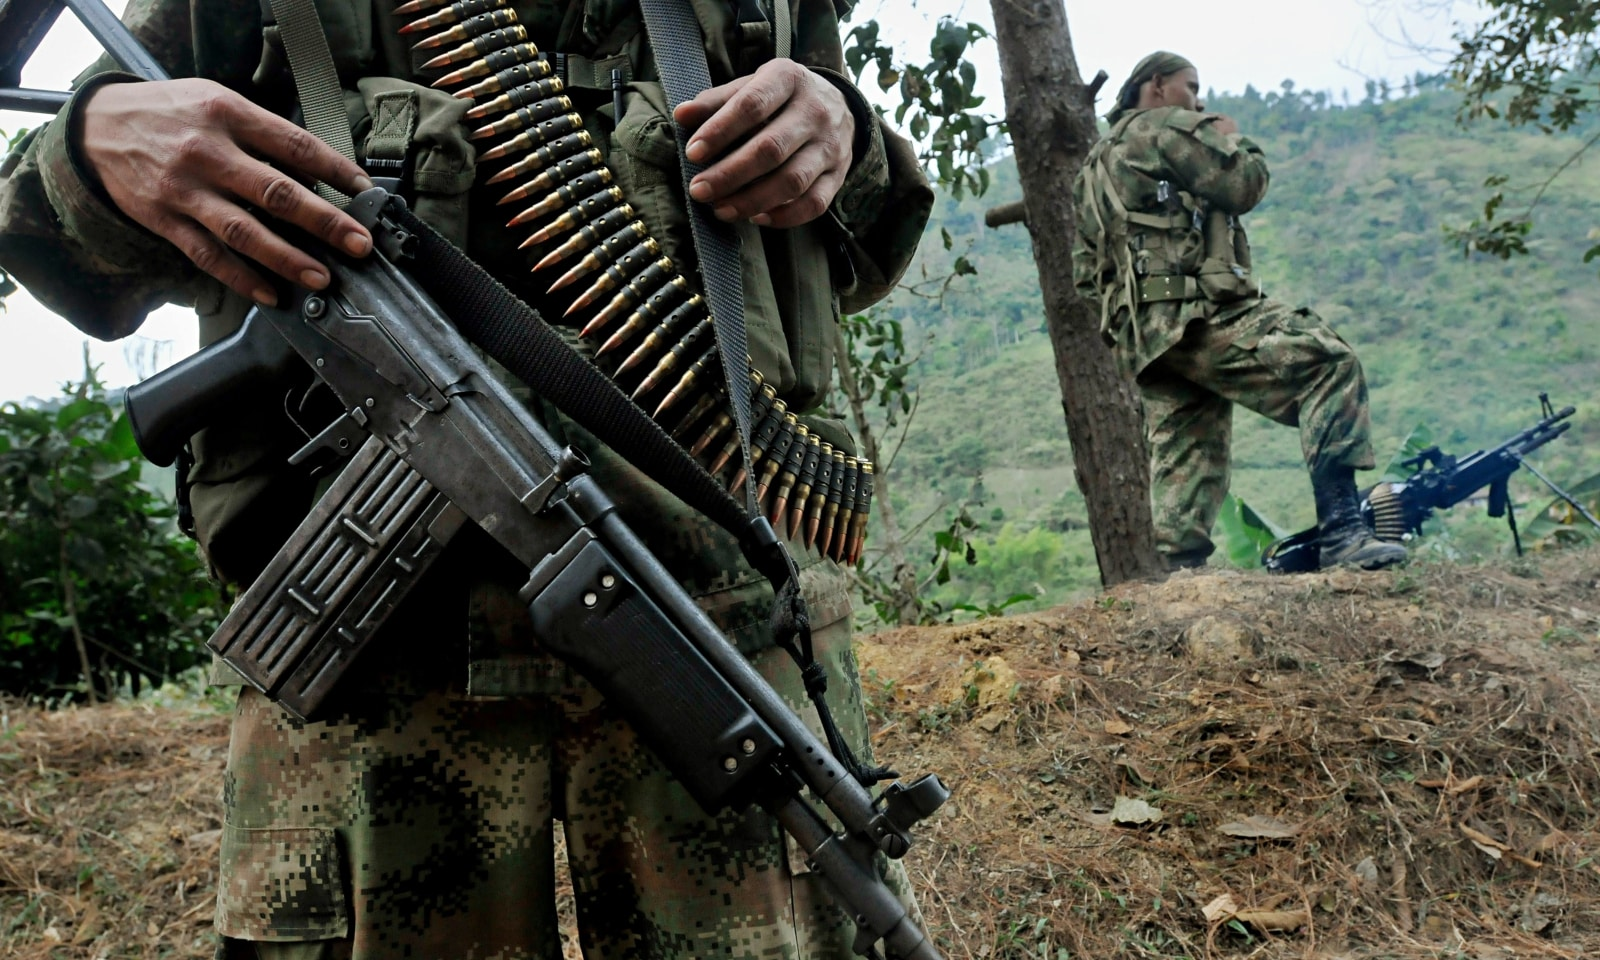 Human Rights Watch Claims Abuse Against Civilians in the Apure Conflict | Caracas Chronicles